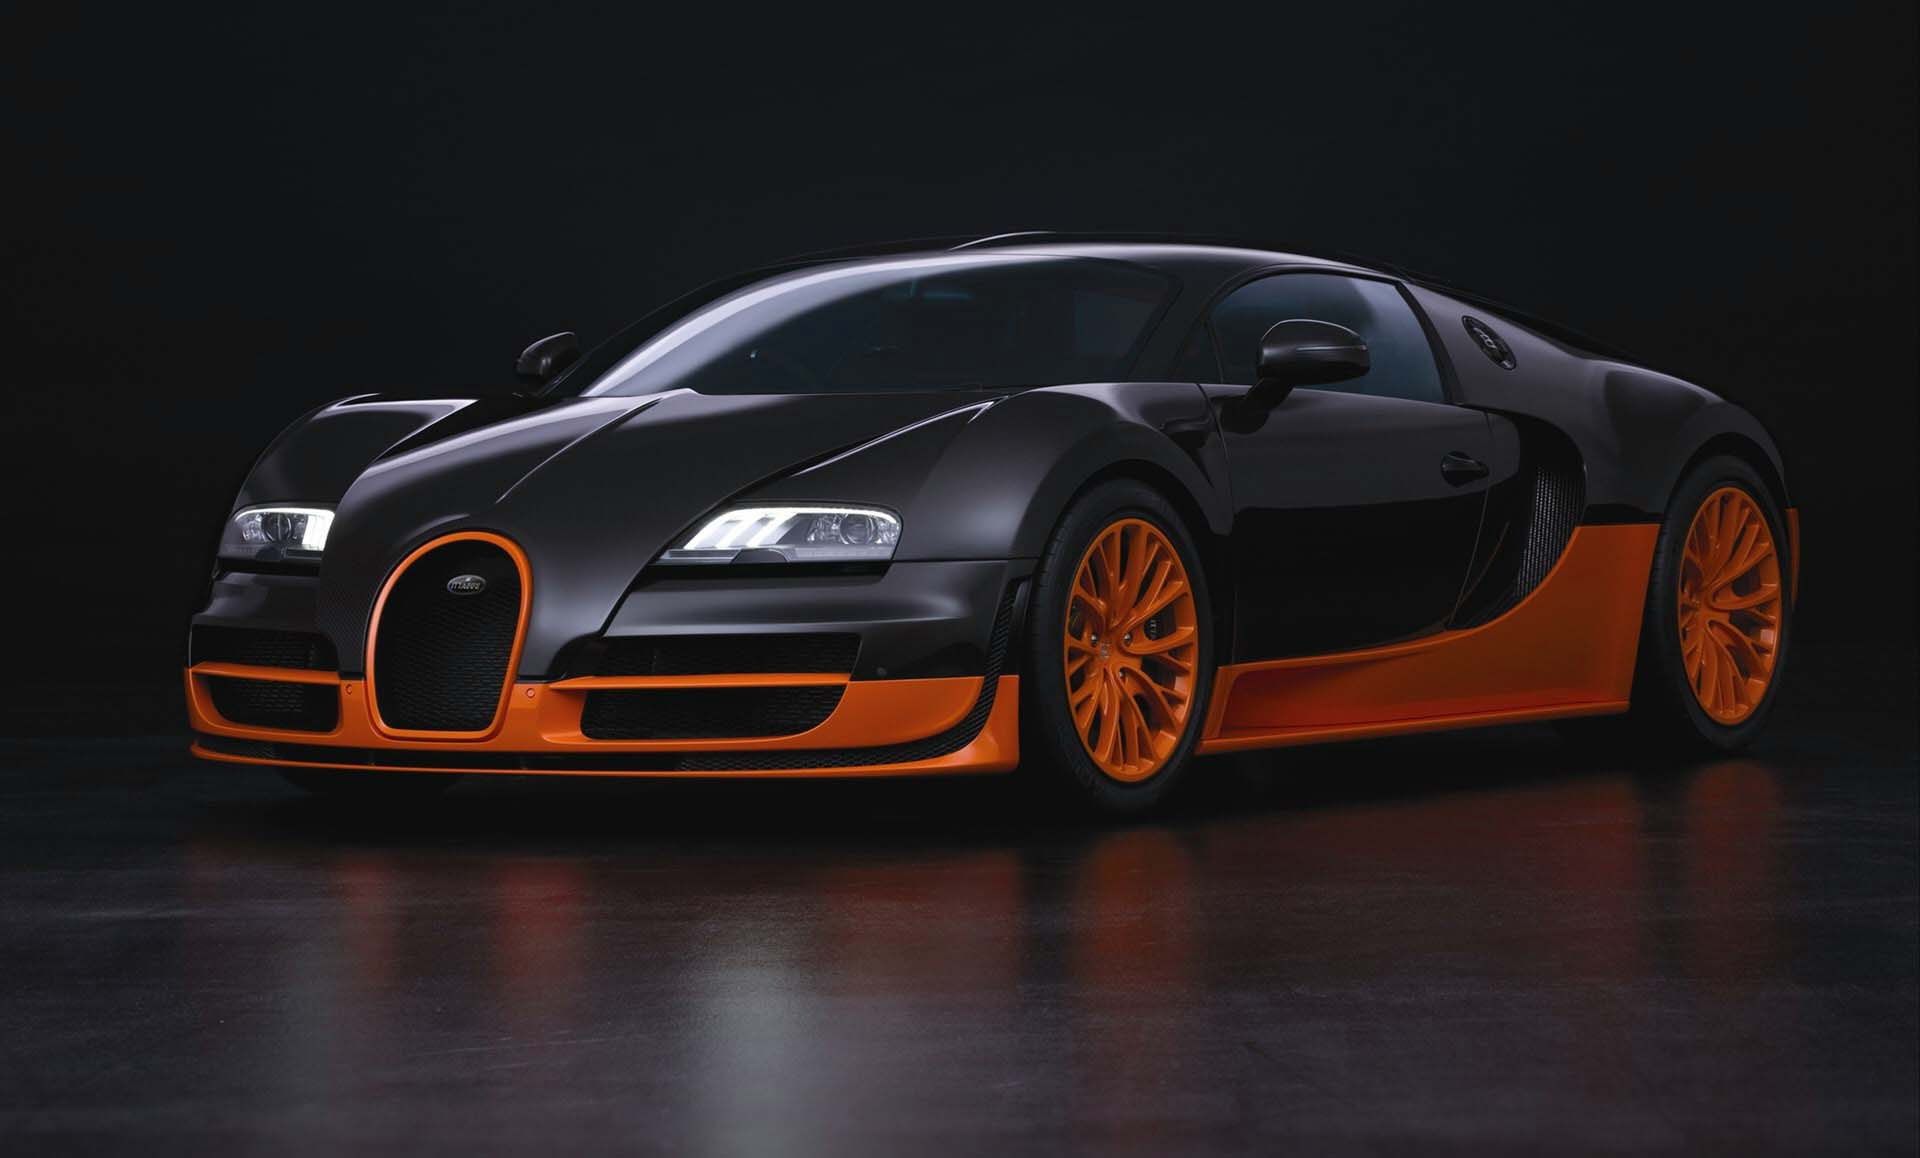 50 bugatti veyron wallpaper hd for laptop - Bugatti veyron photos wallpapers ...